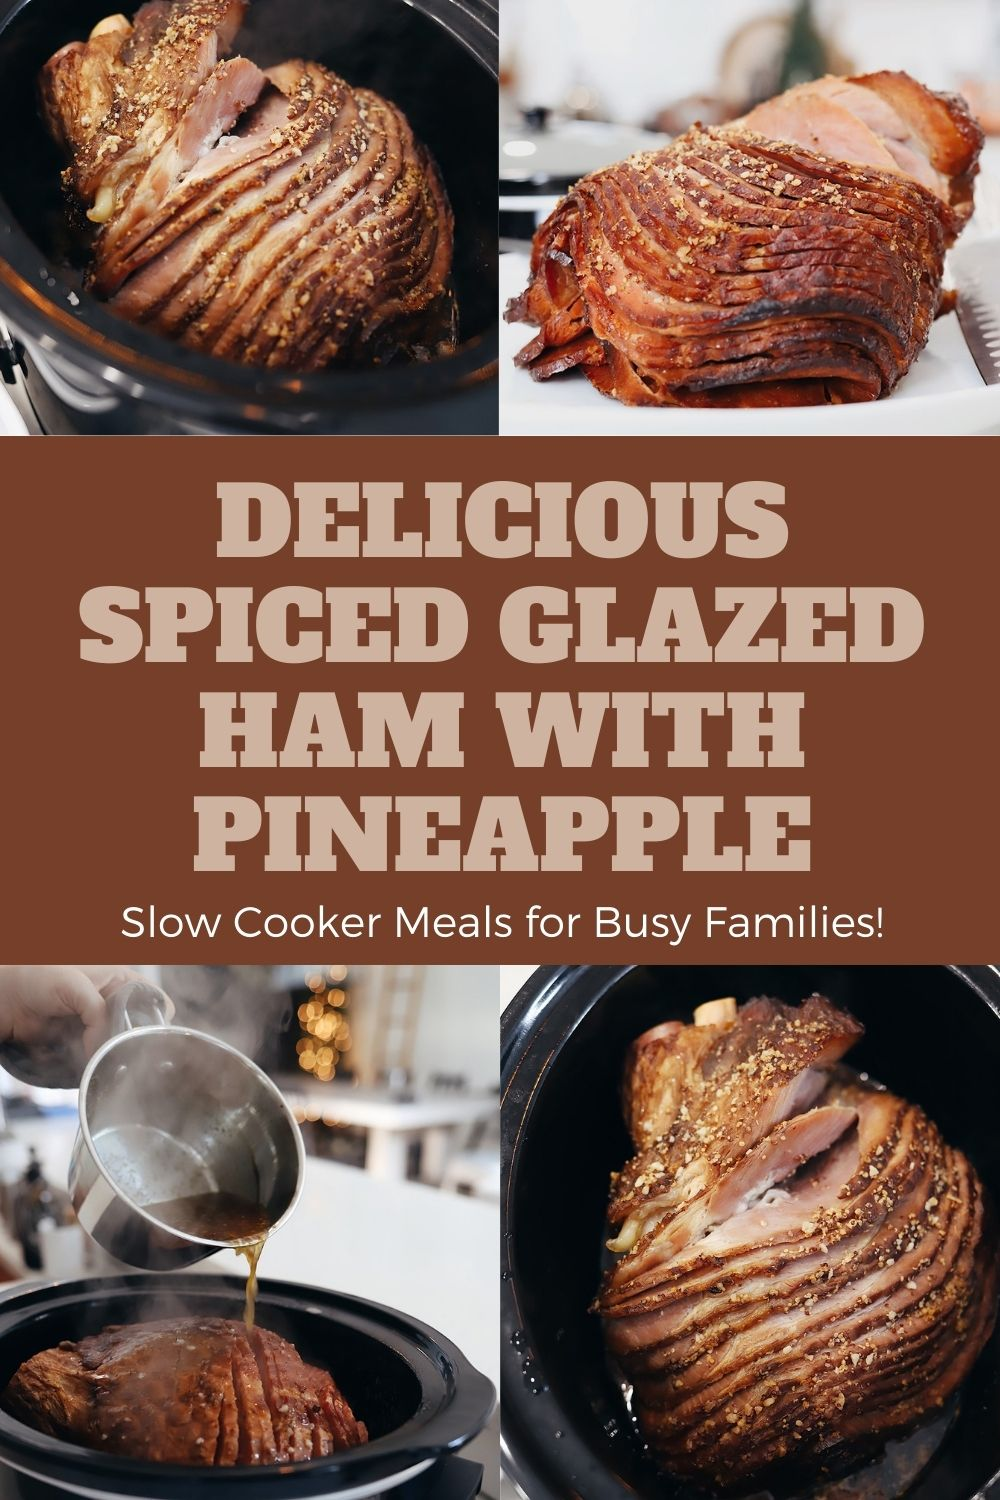 Delicious Spiced Glazed Ham for Easy Ham in the Slow Cooker With Pineapple. Great for Christmas dinner, holiday feasts, family dinner and more from lifestyle blogger Tabitha Blue of Fresh Mommy Blog.